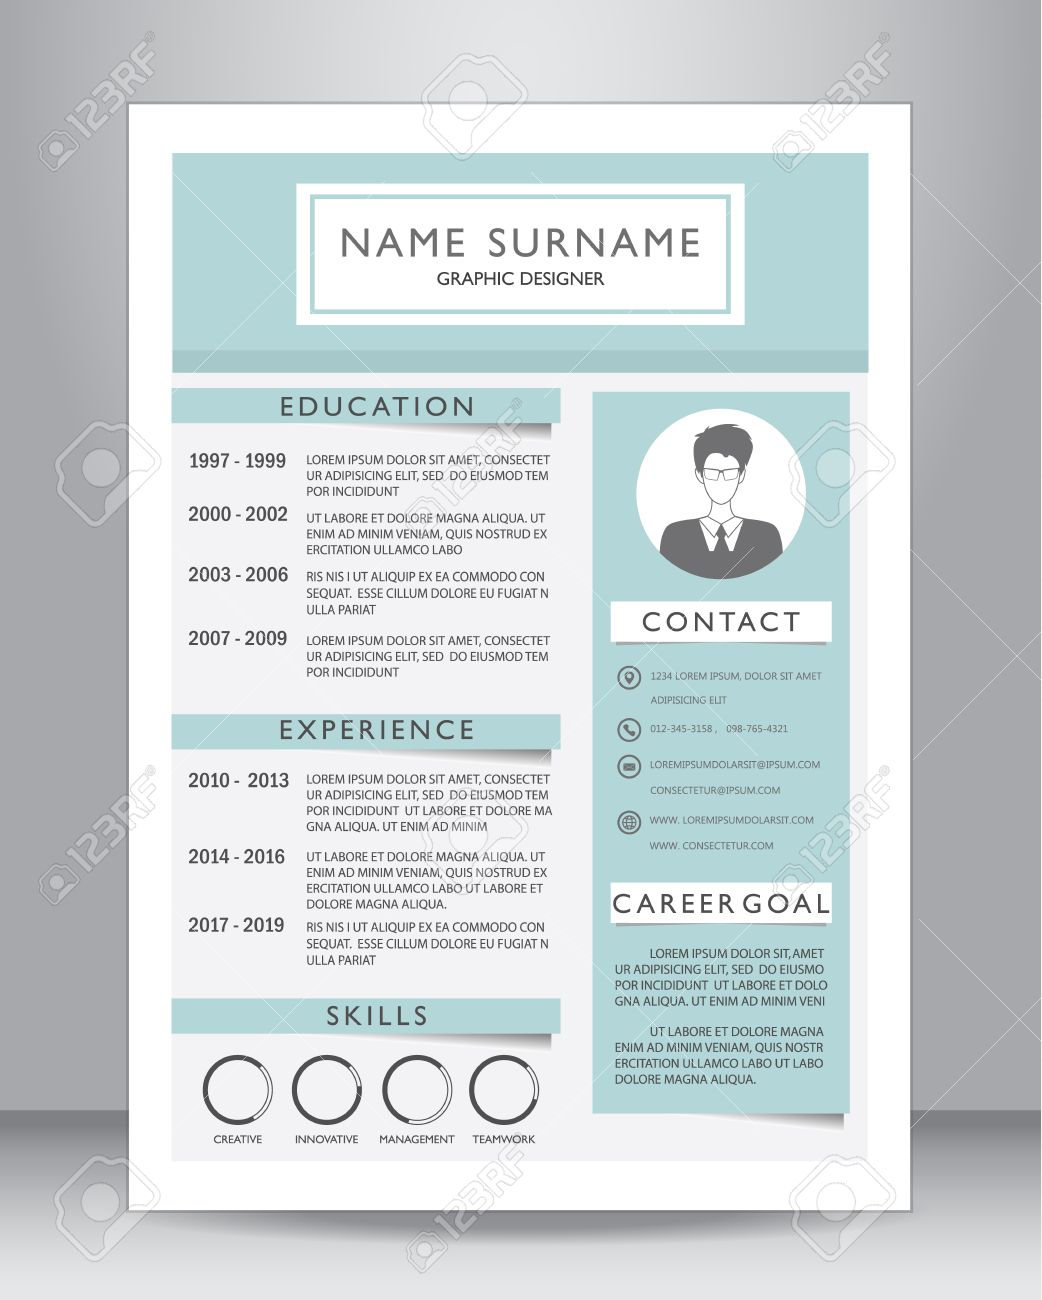 Job resume or cv template layout template in a4 size vector job resume or cv template layout template in a4 size vector illustration yelopaper Images